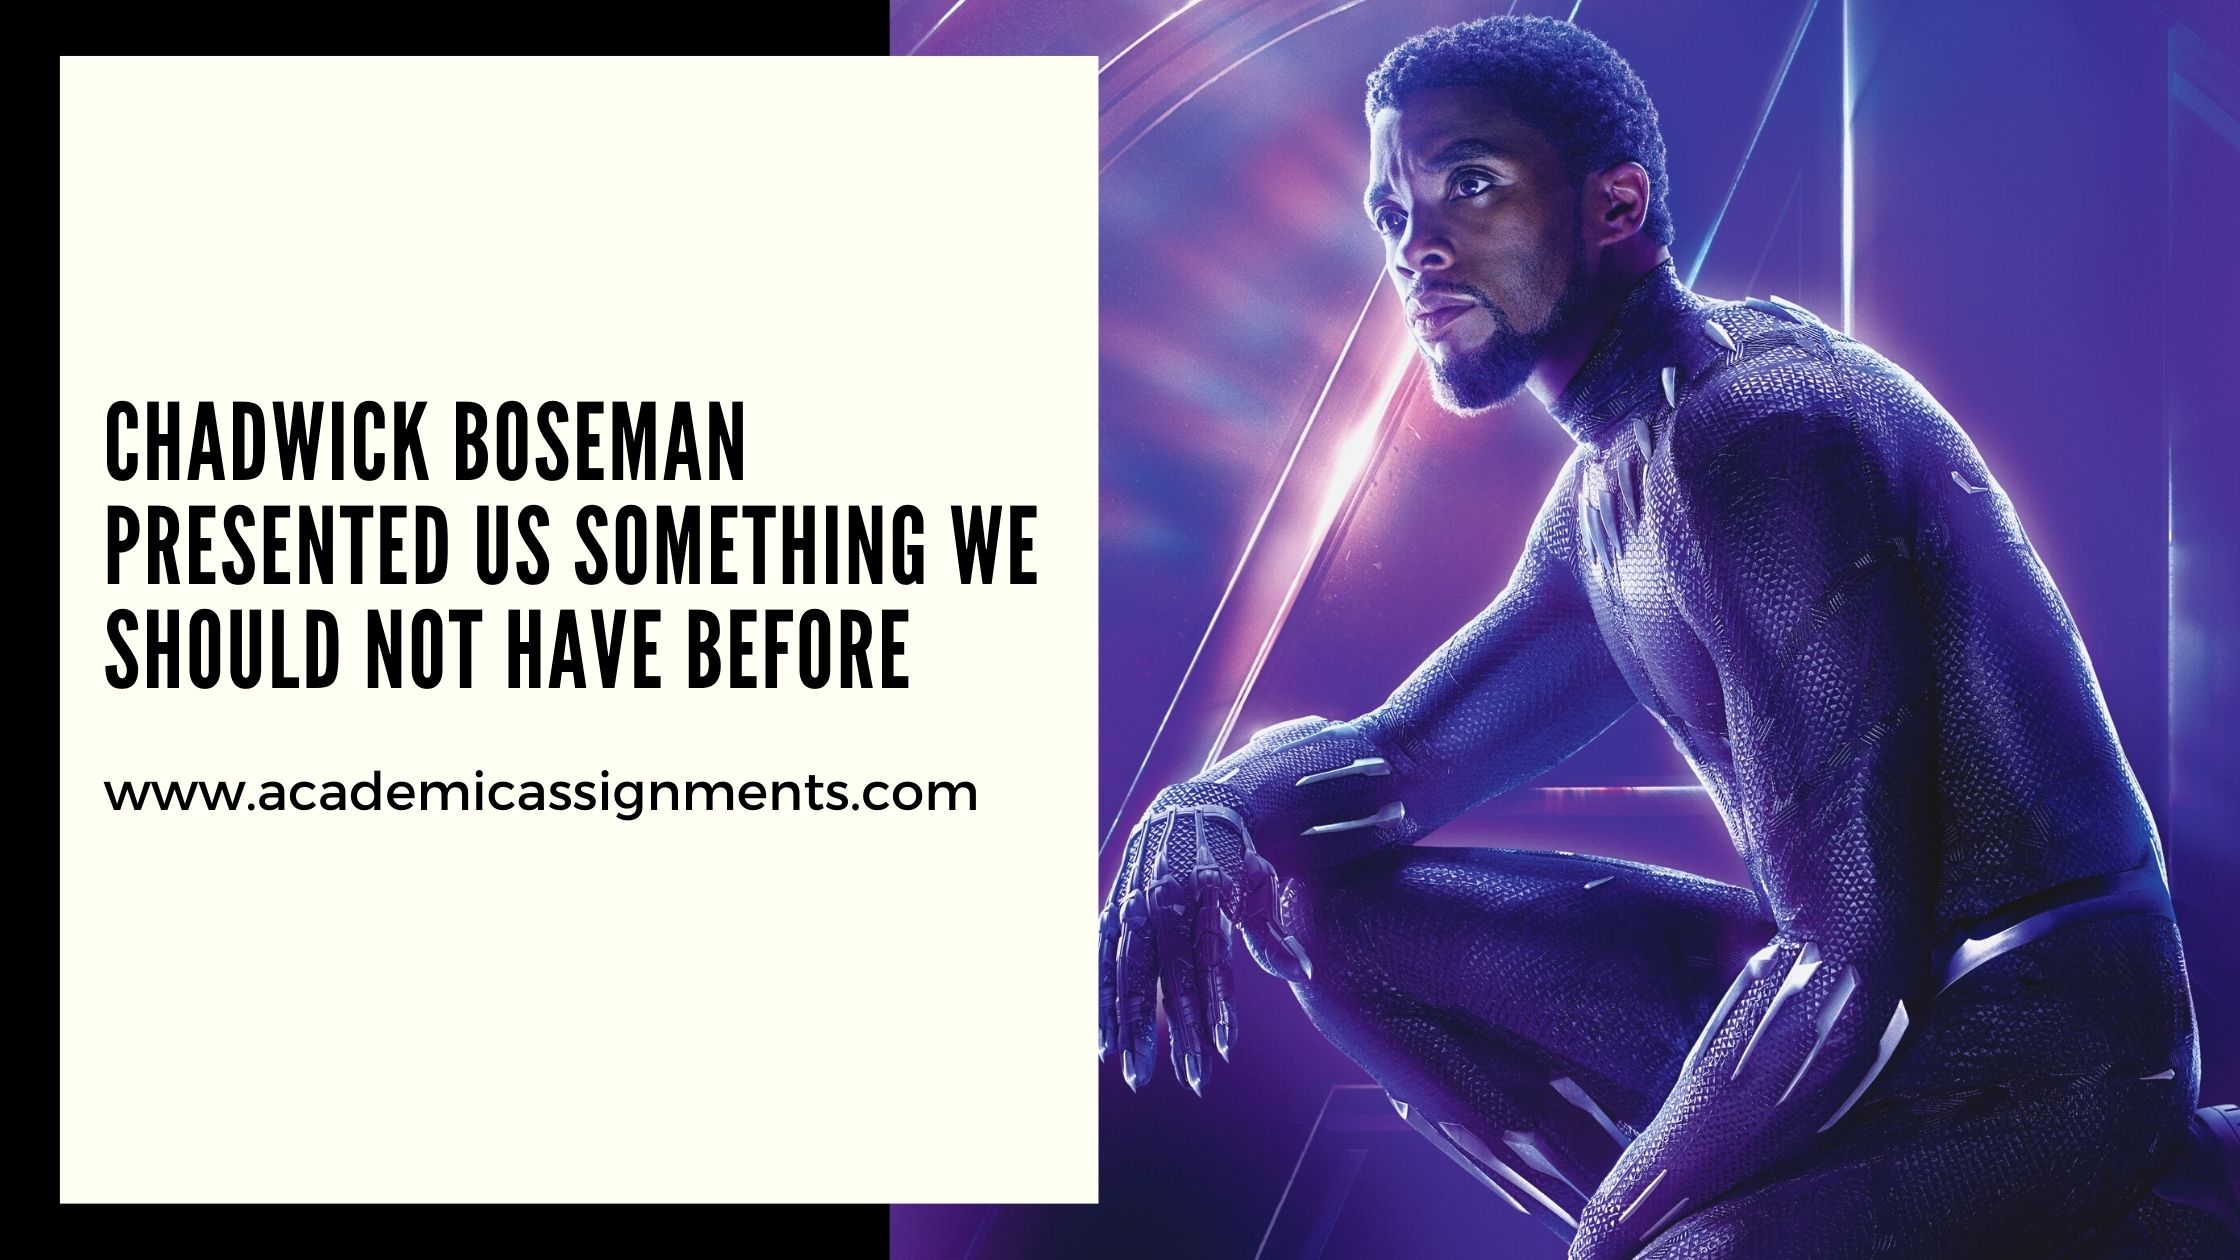 Chadwick Boseman Presented Us Something We Should Not Have Before